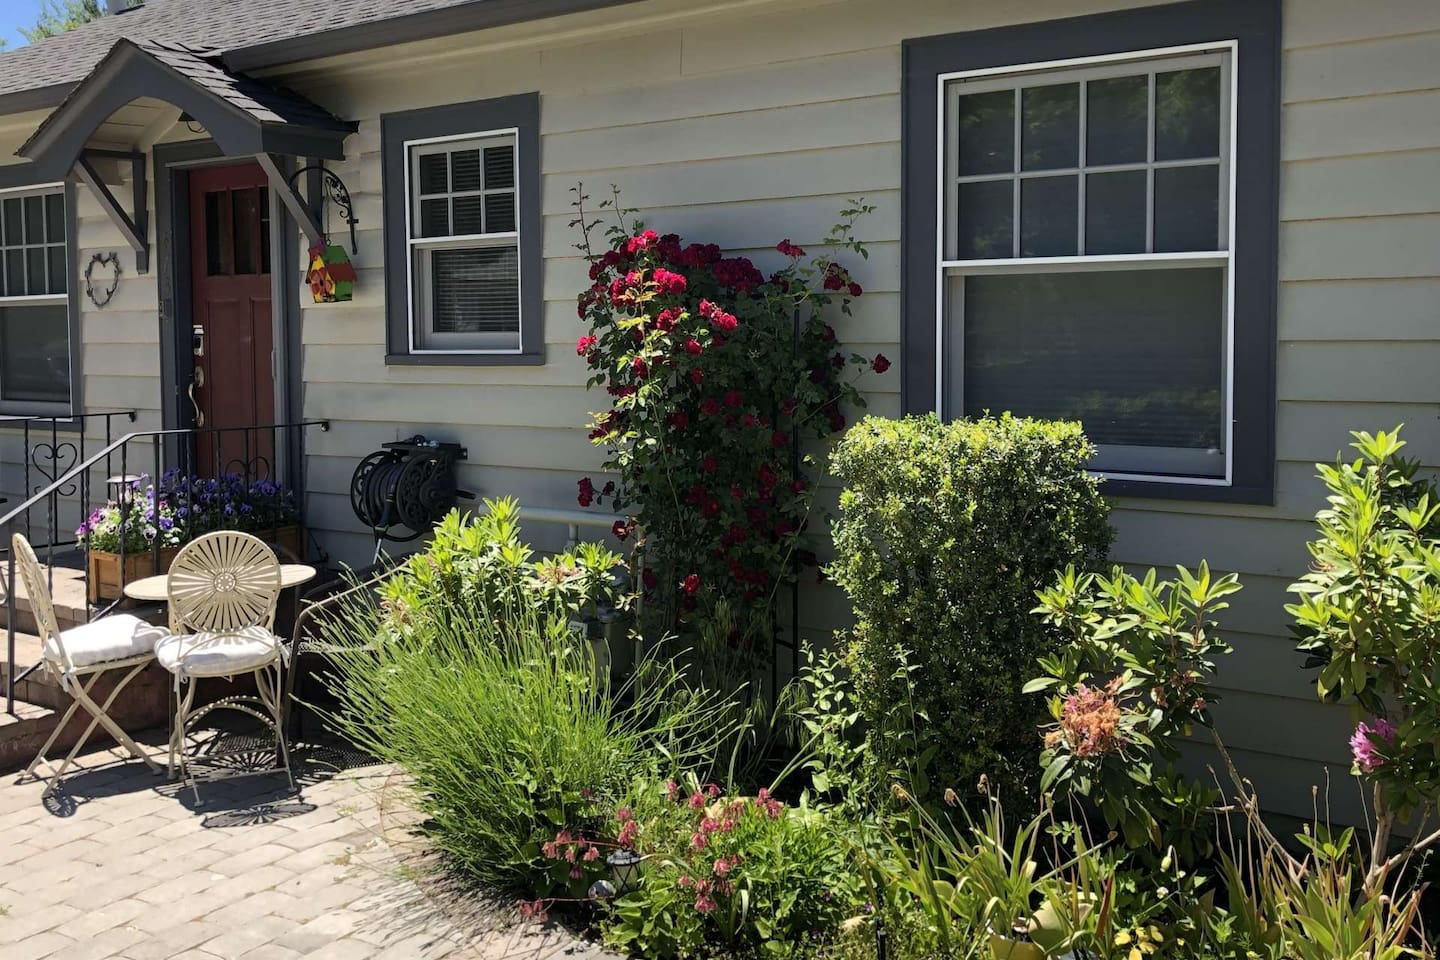 Beautifully landscaped, the home is surrounded by colorful perennials.